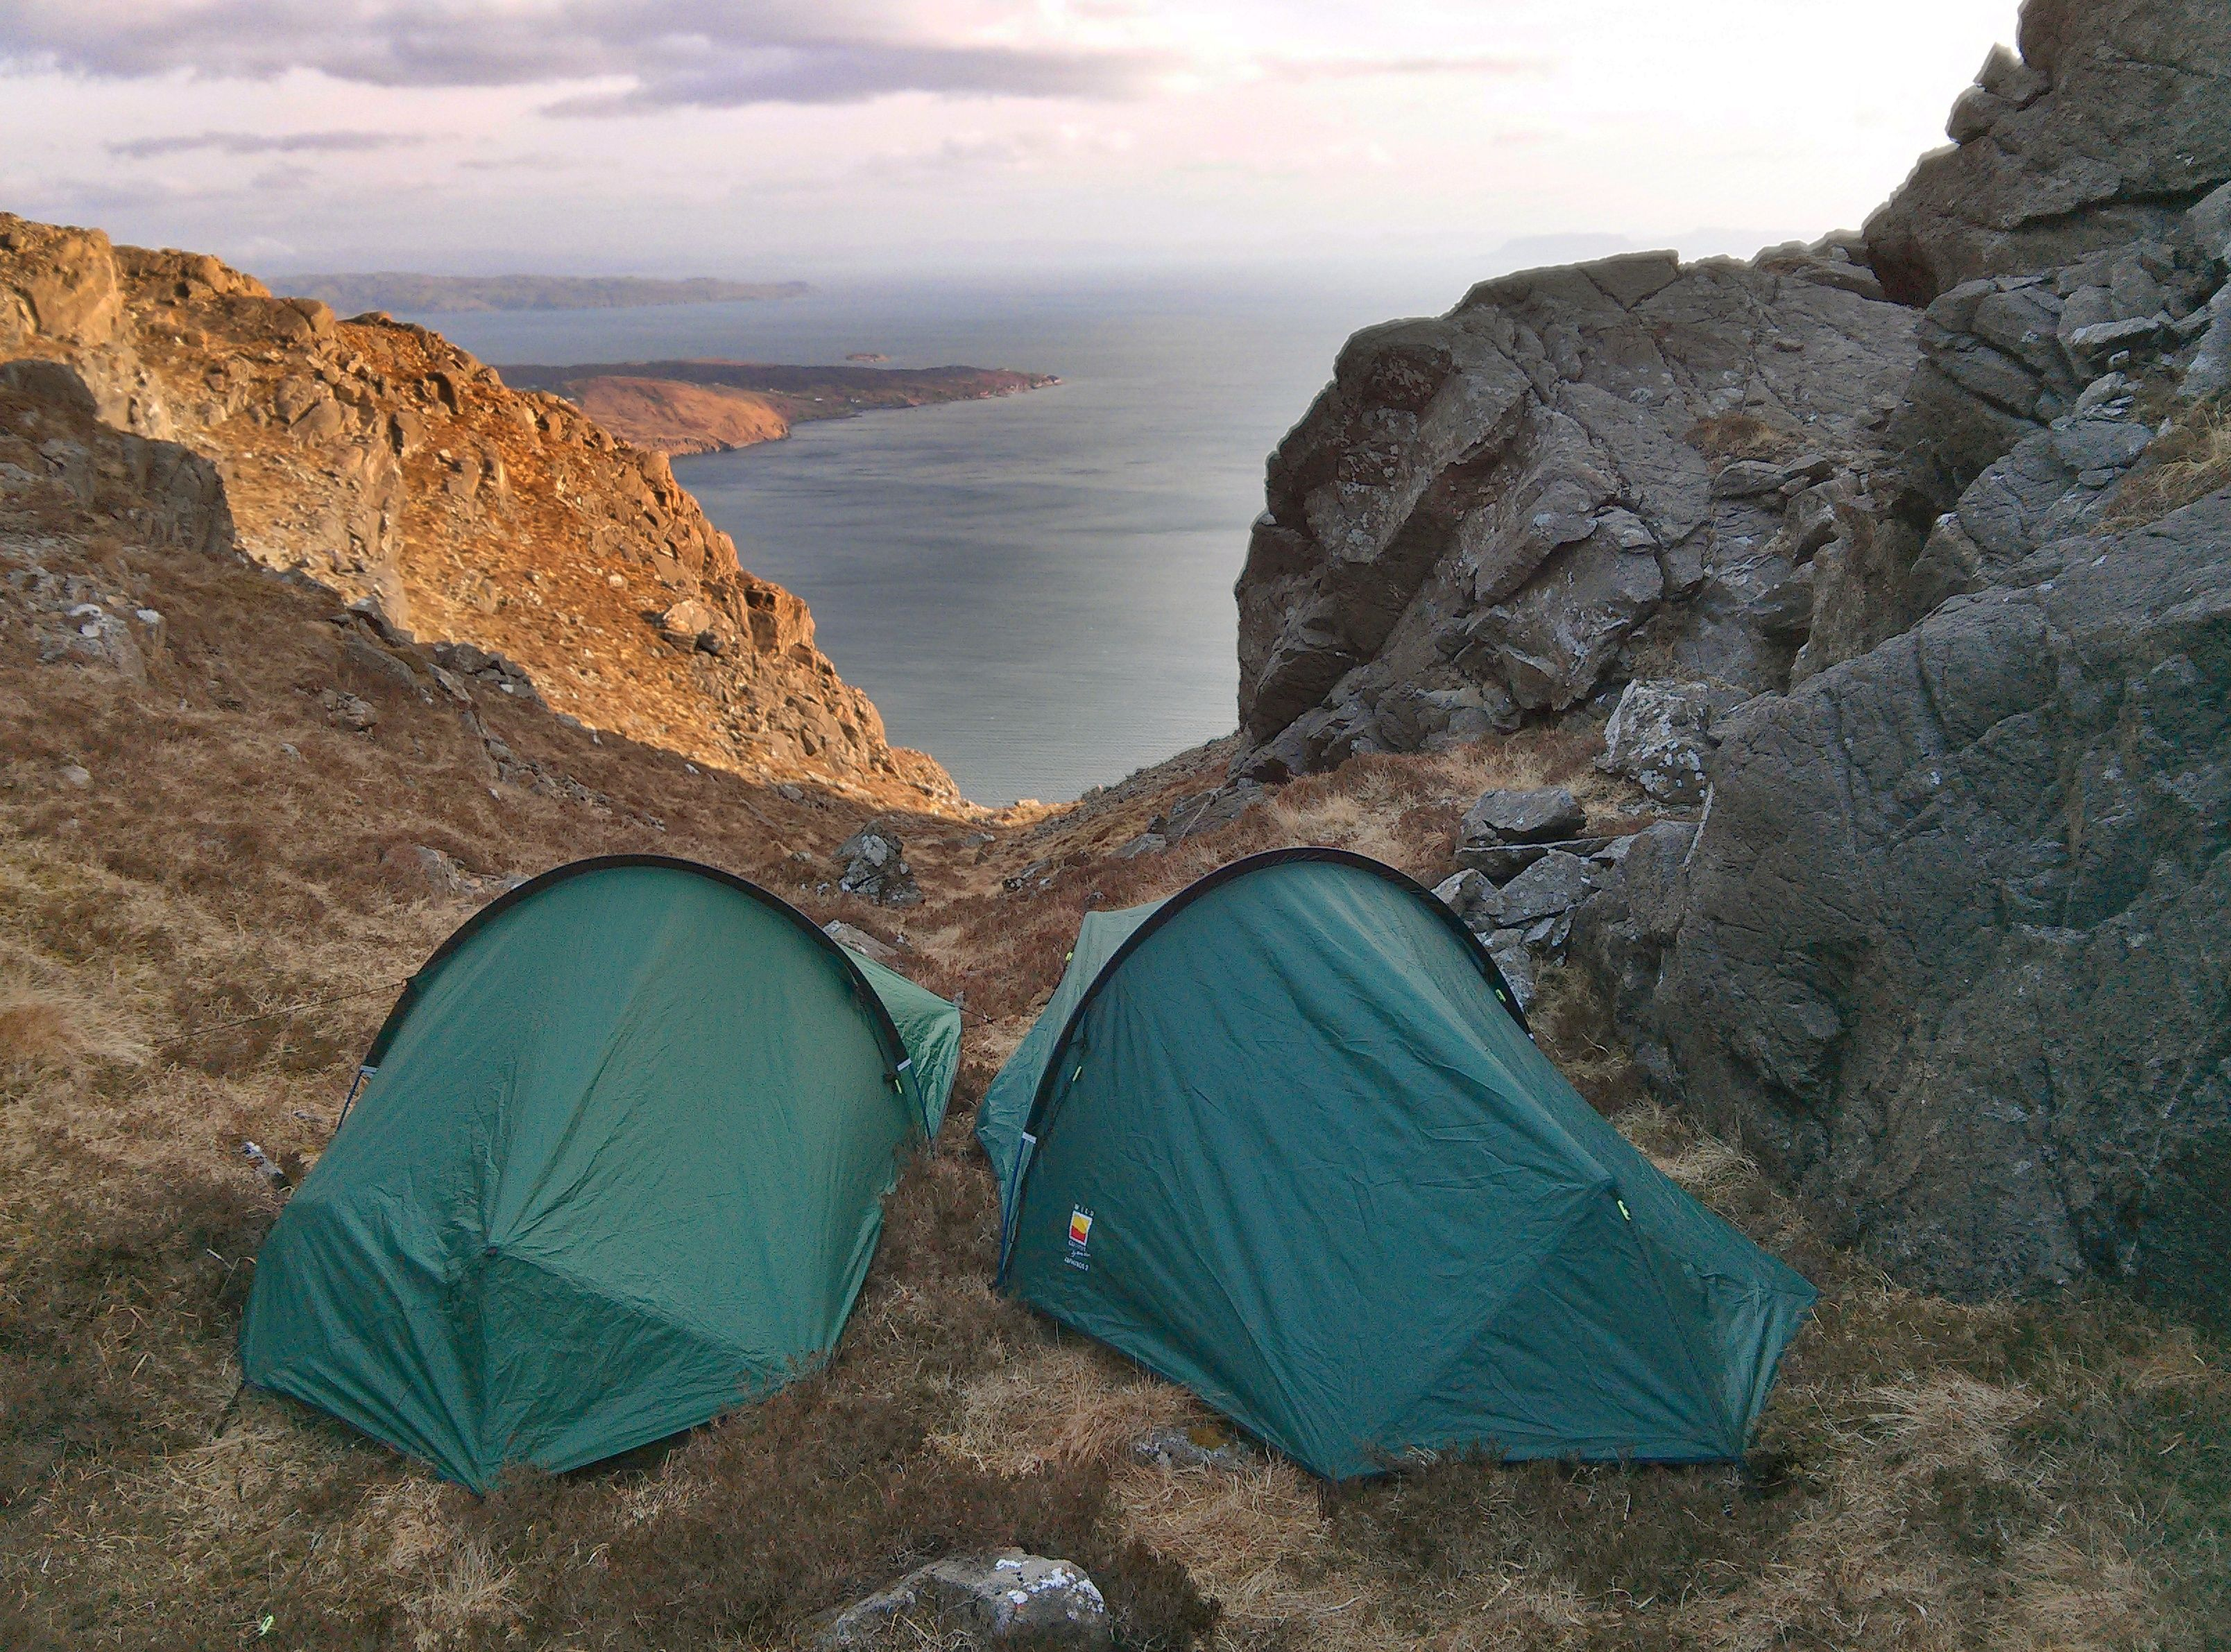 Sgurr Na Stri Wild C& - Tent Pitch - Isle Of SKye - Scotland Photography & Wild camping on Isle of Skye | ESCAPE | Pinterest | Wild camp ...